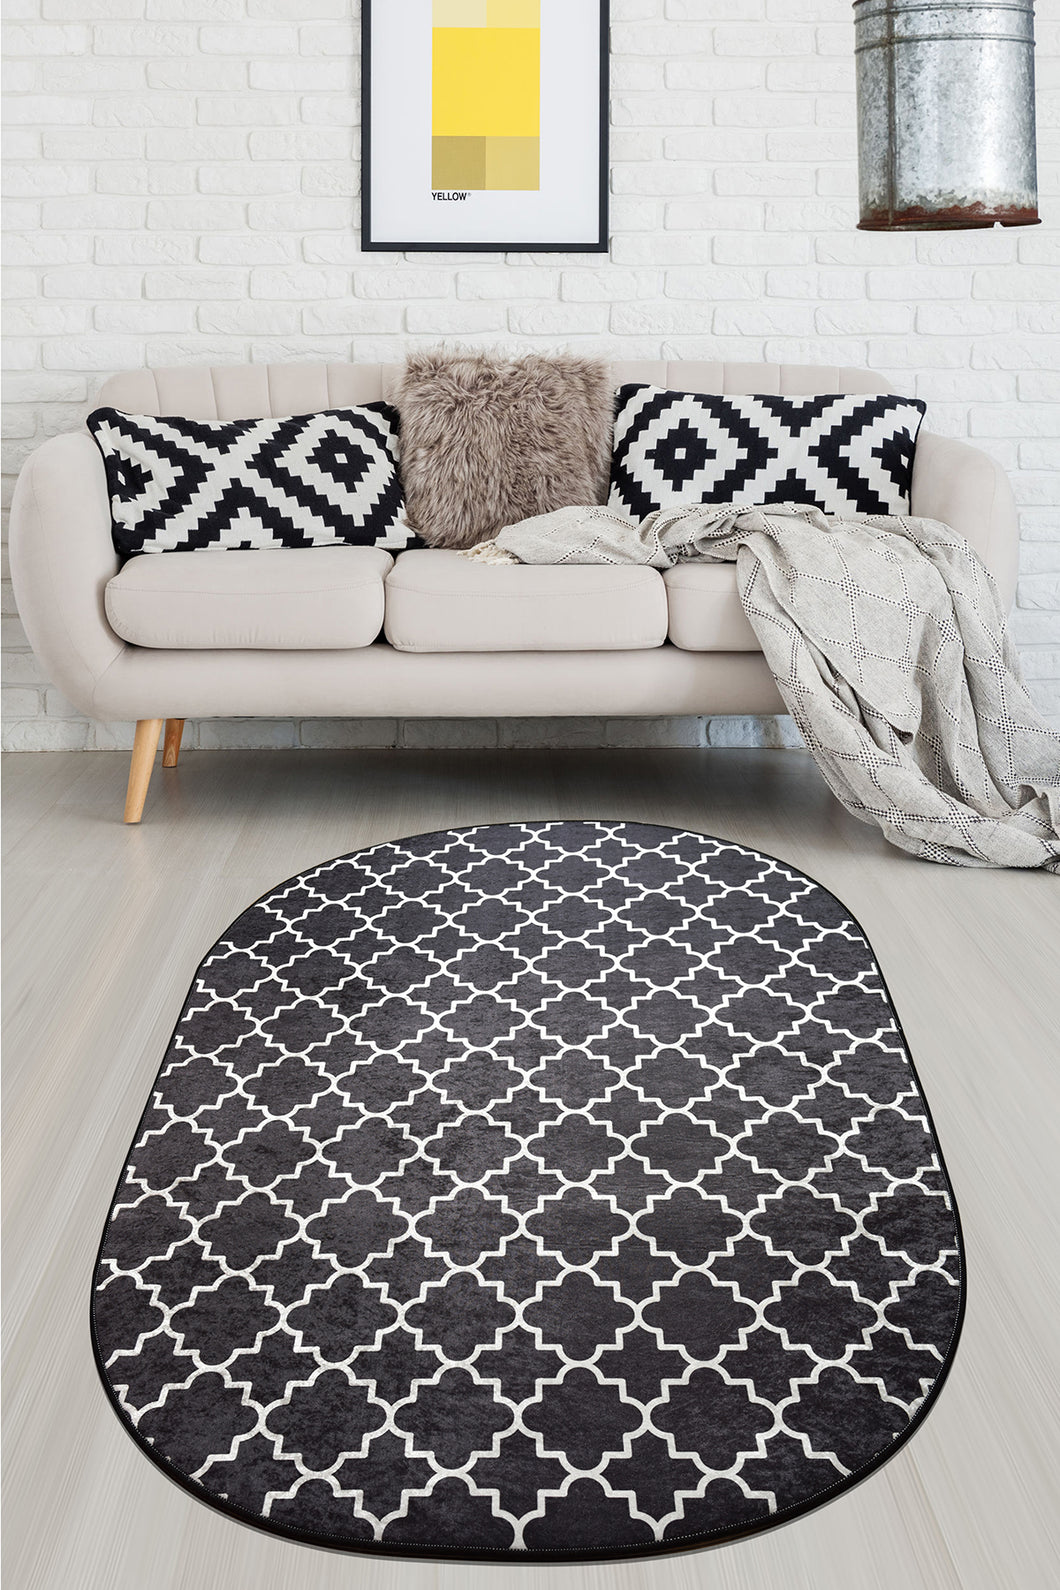 Area Rug Cup Oval Black 140x190cm